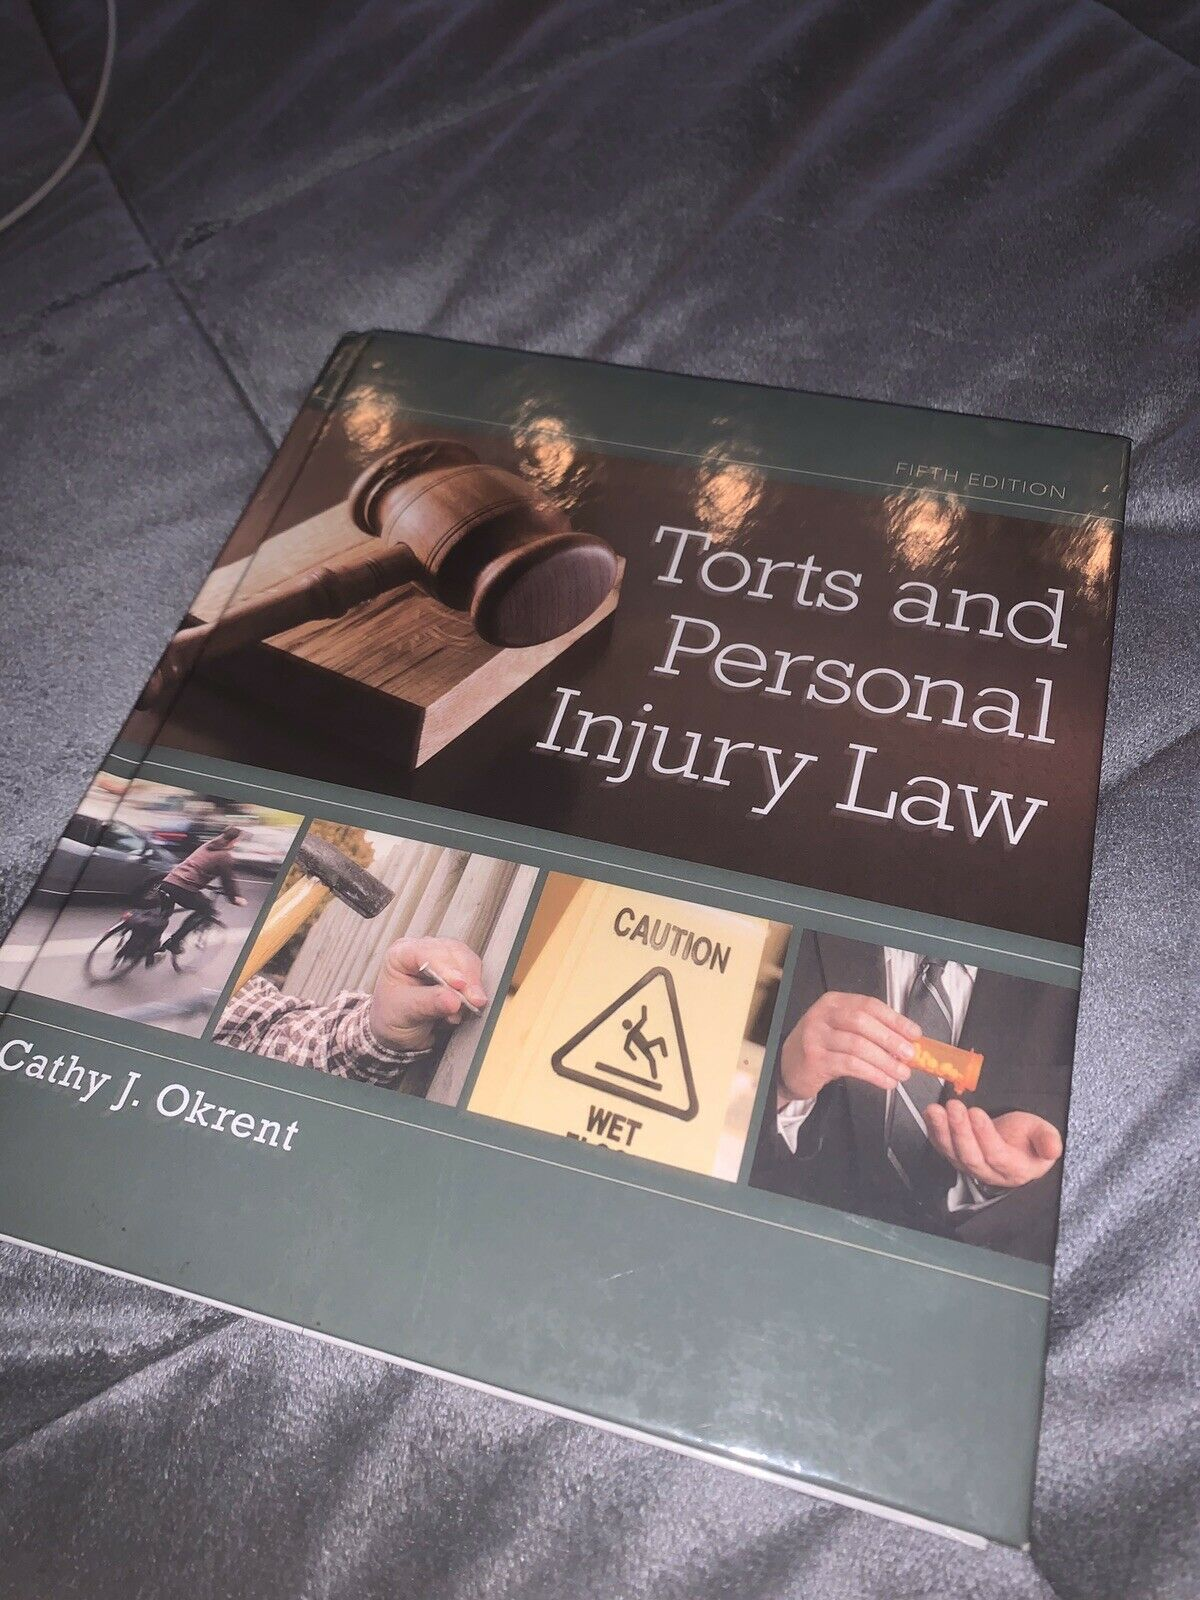 Torts and Personal Injury Law by Cathy Okrent Hardcover Book English 2018 1